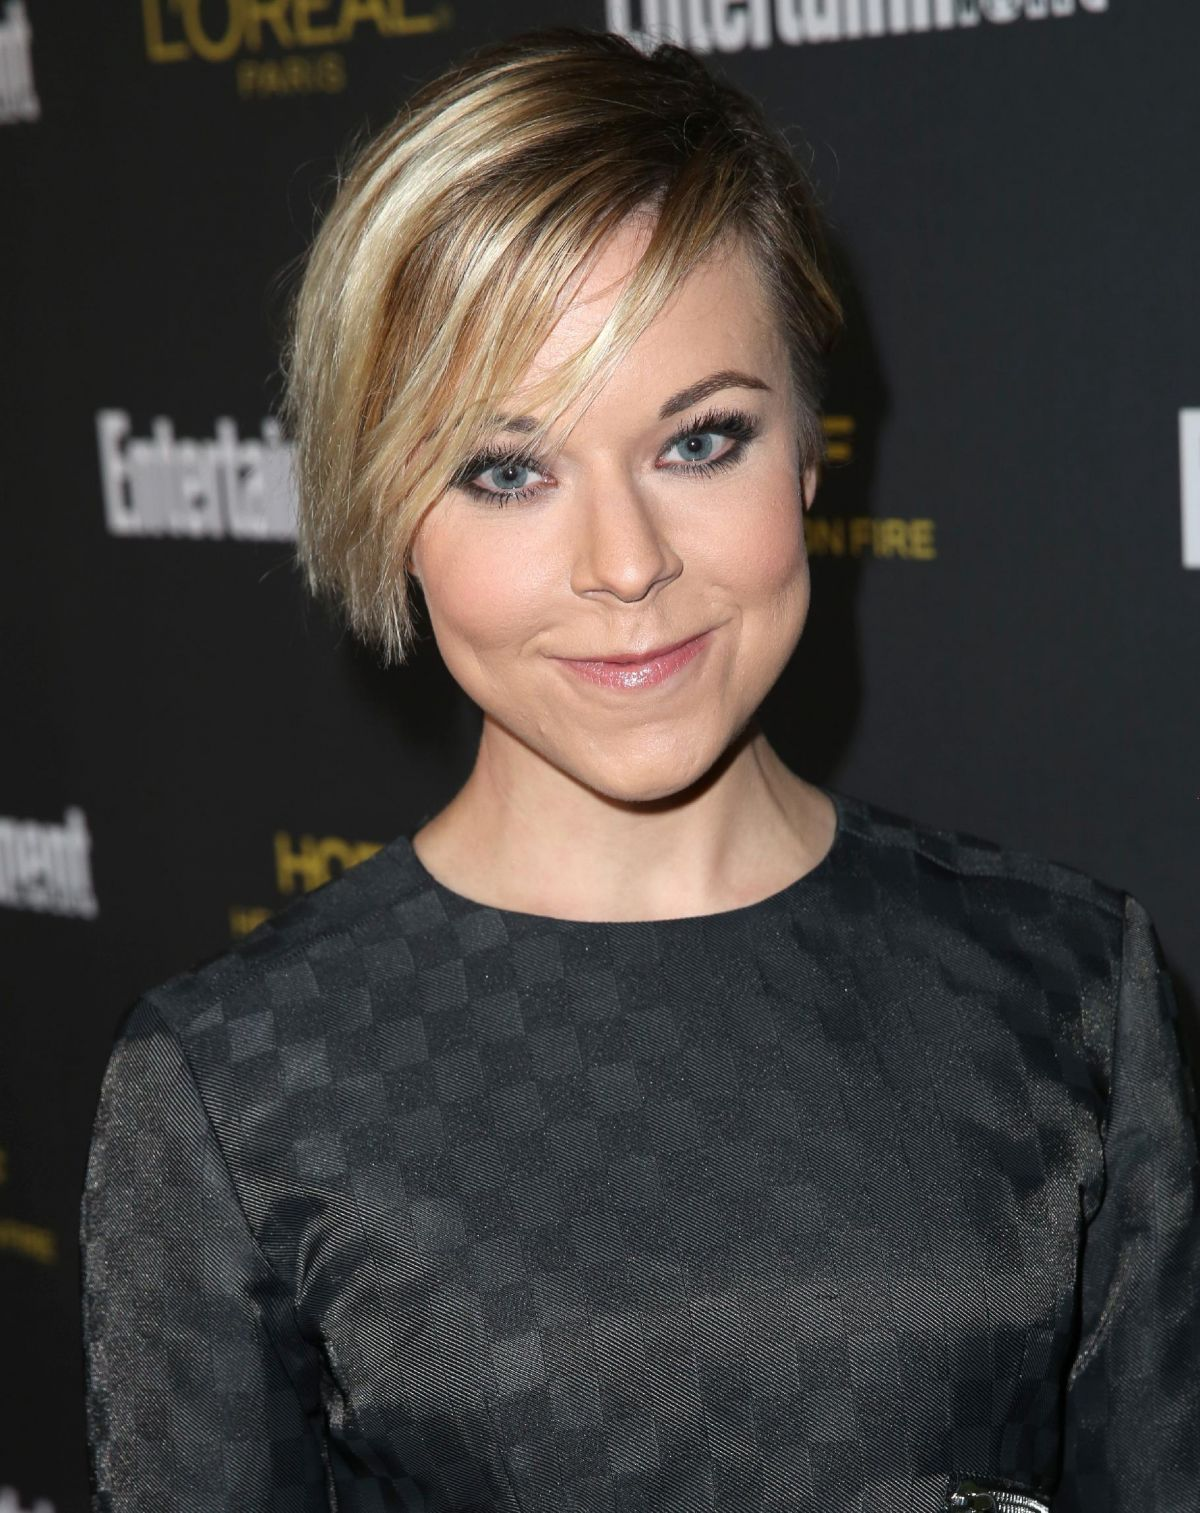 TINA MAJORINO at Entertainment Weekly's Pre-emmy Party